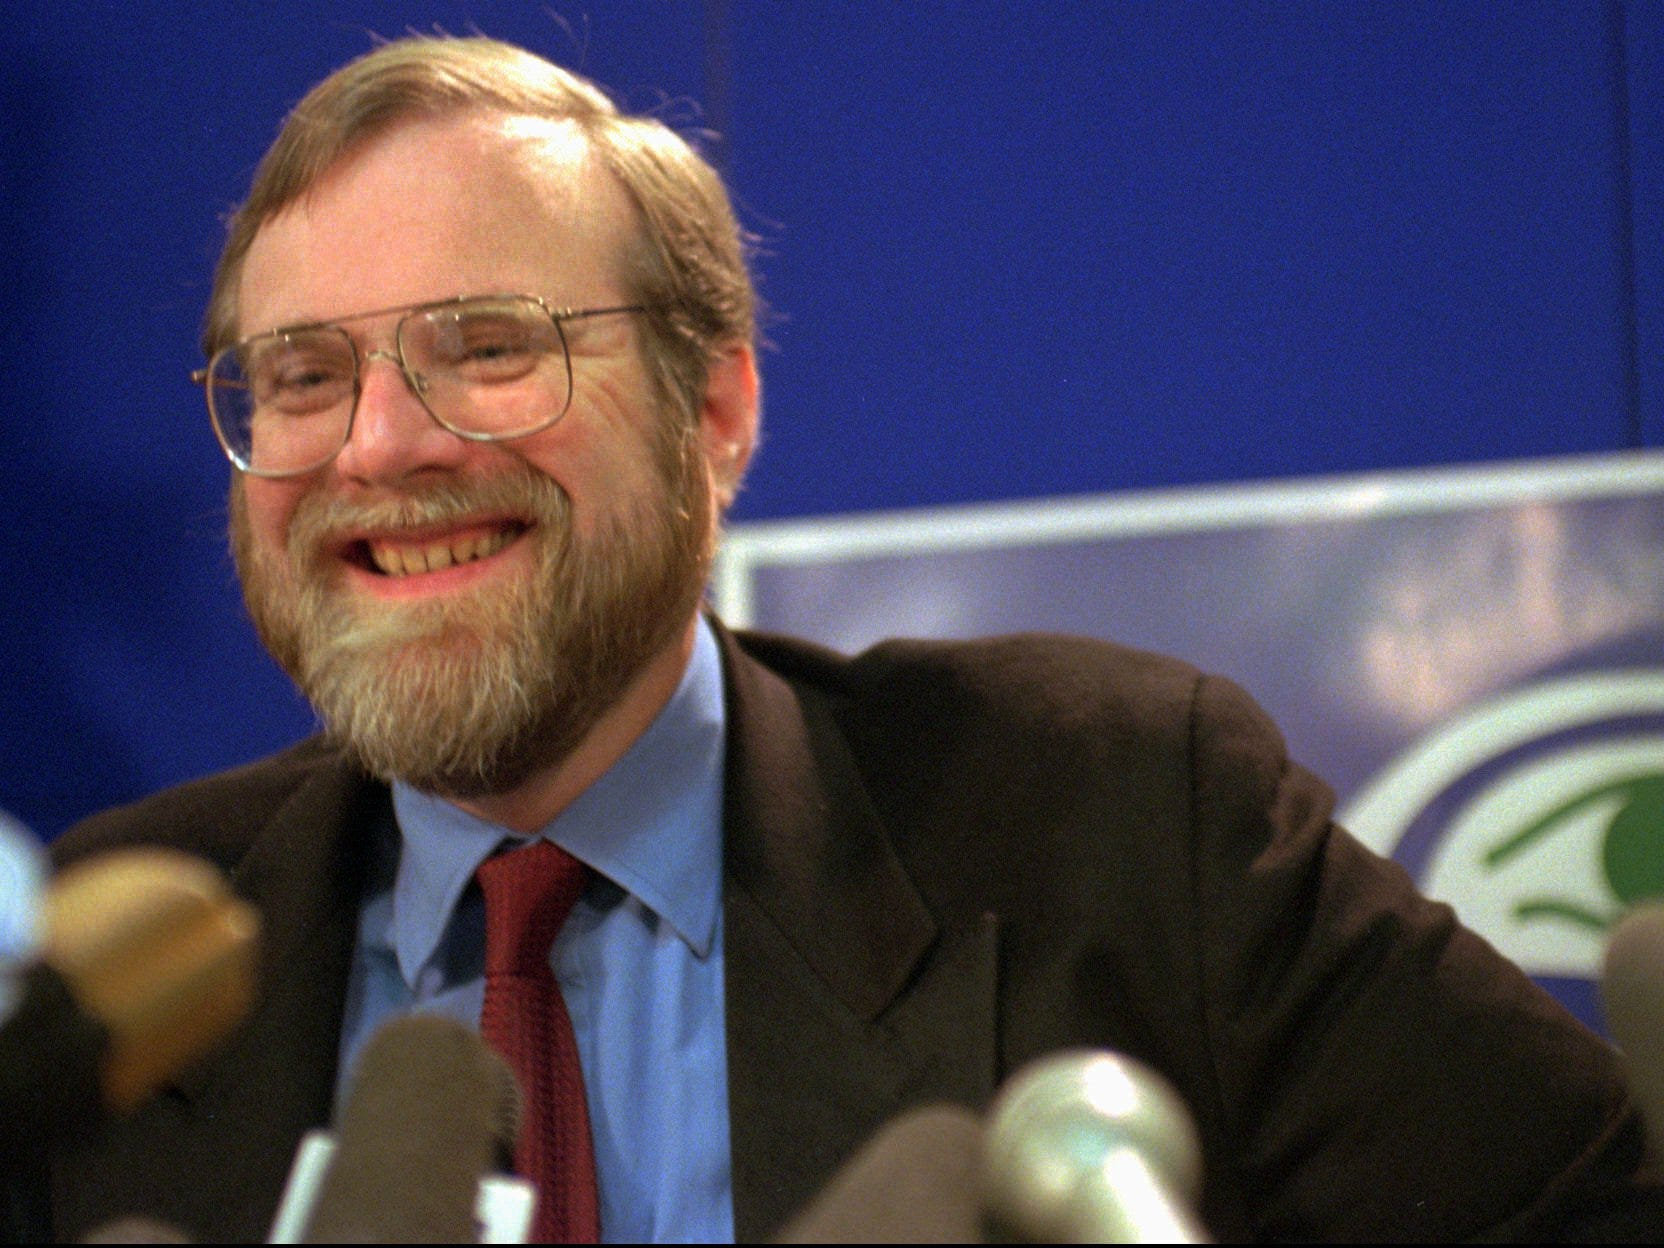 With the eye of the team logo peering over his shoulder, Microsoft co-founder Paul Allen laughs during a news conference at Seattle Seahawk headquarters Tuesday, April 23, 1996 in Kirkland, Wash. Allen says he purchased an option to buy the team to keep the Seahawks in Seattle.